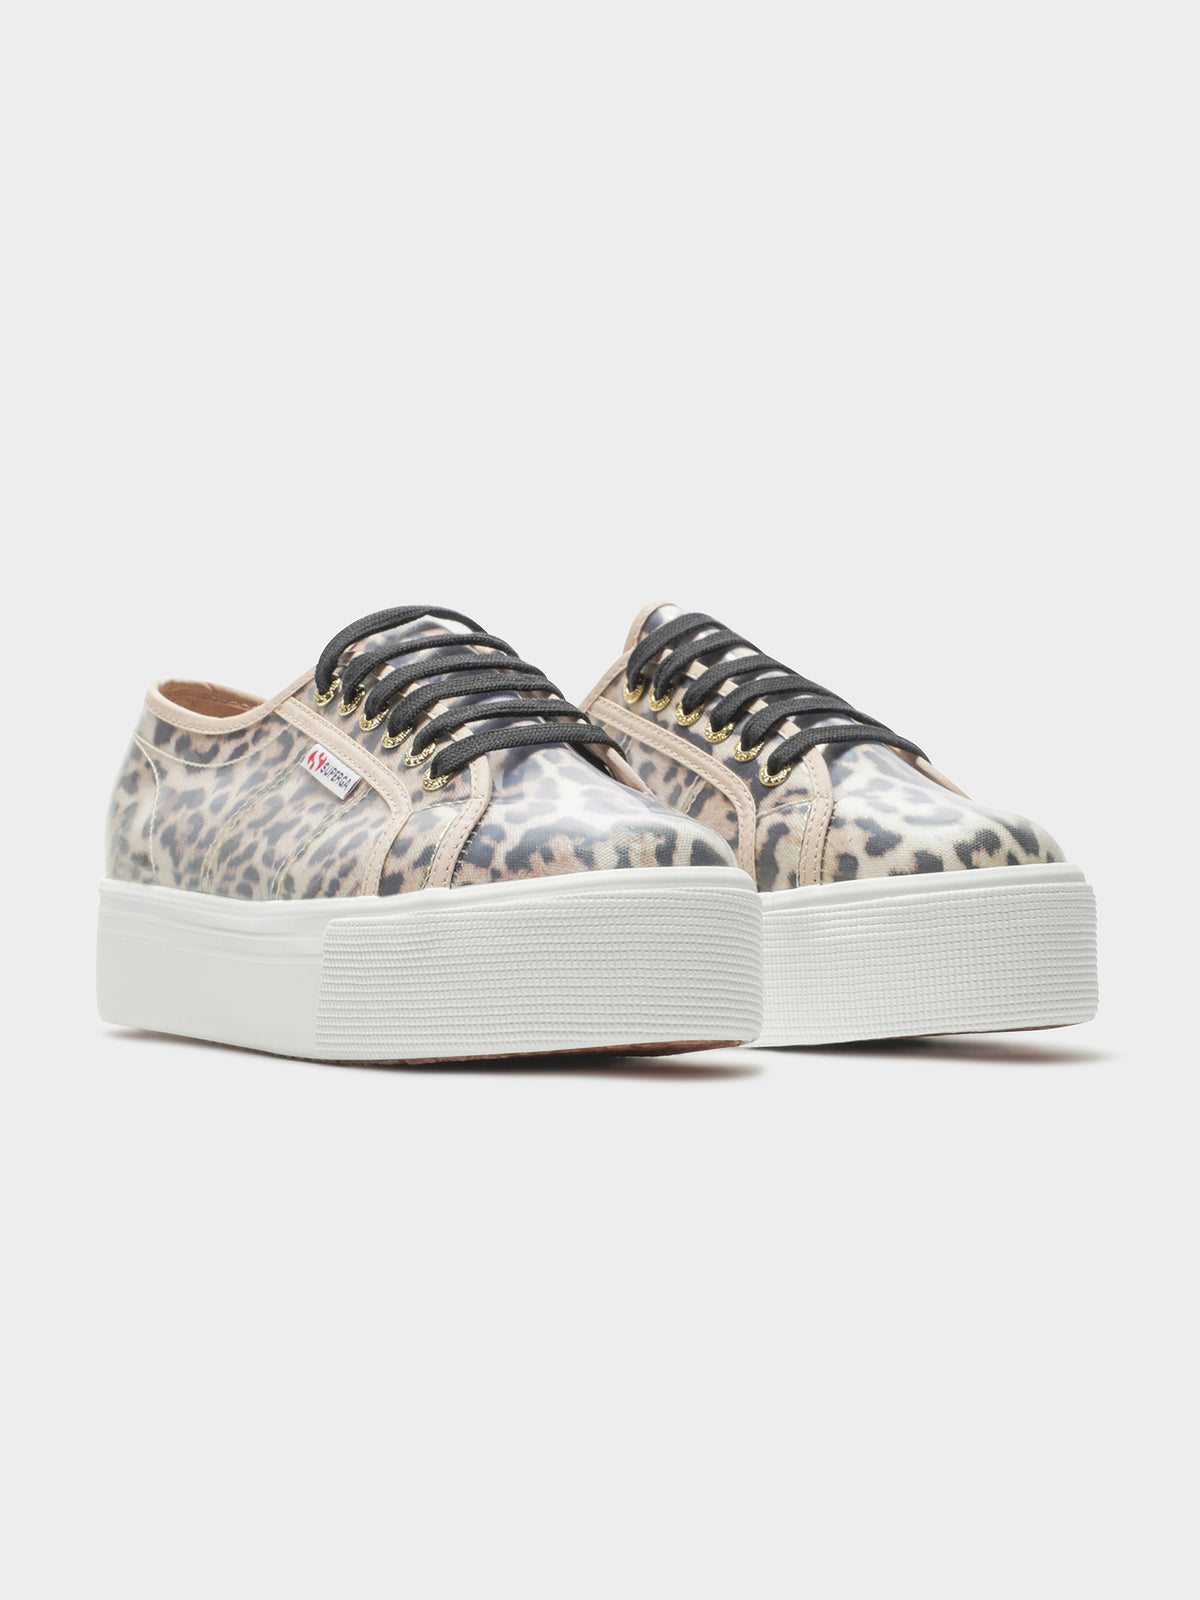 Womens 2790 COT Transparent Printed Platform Sneakers in Beige Jaguar Print